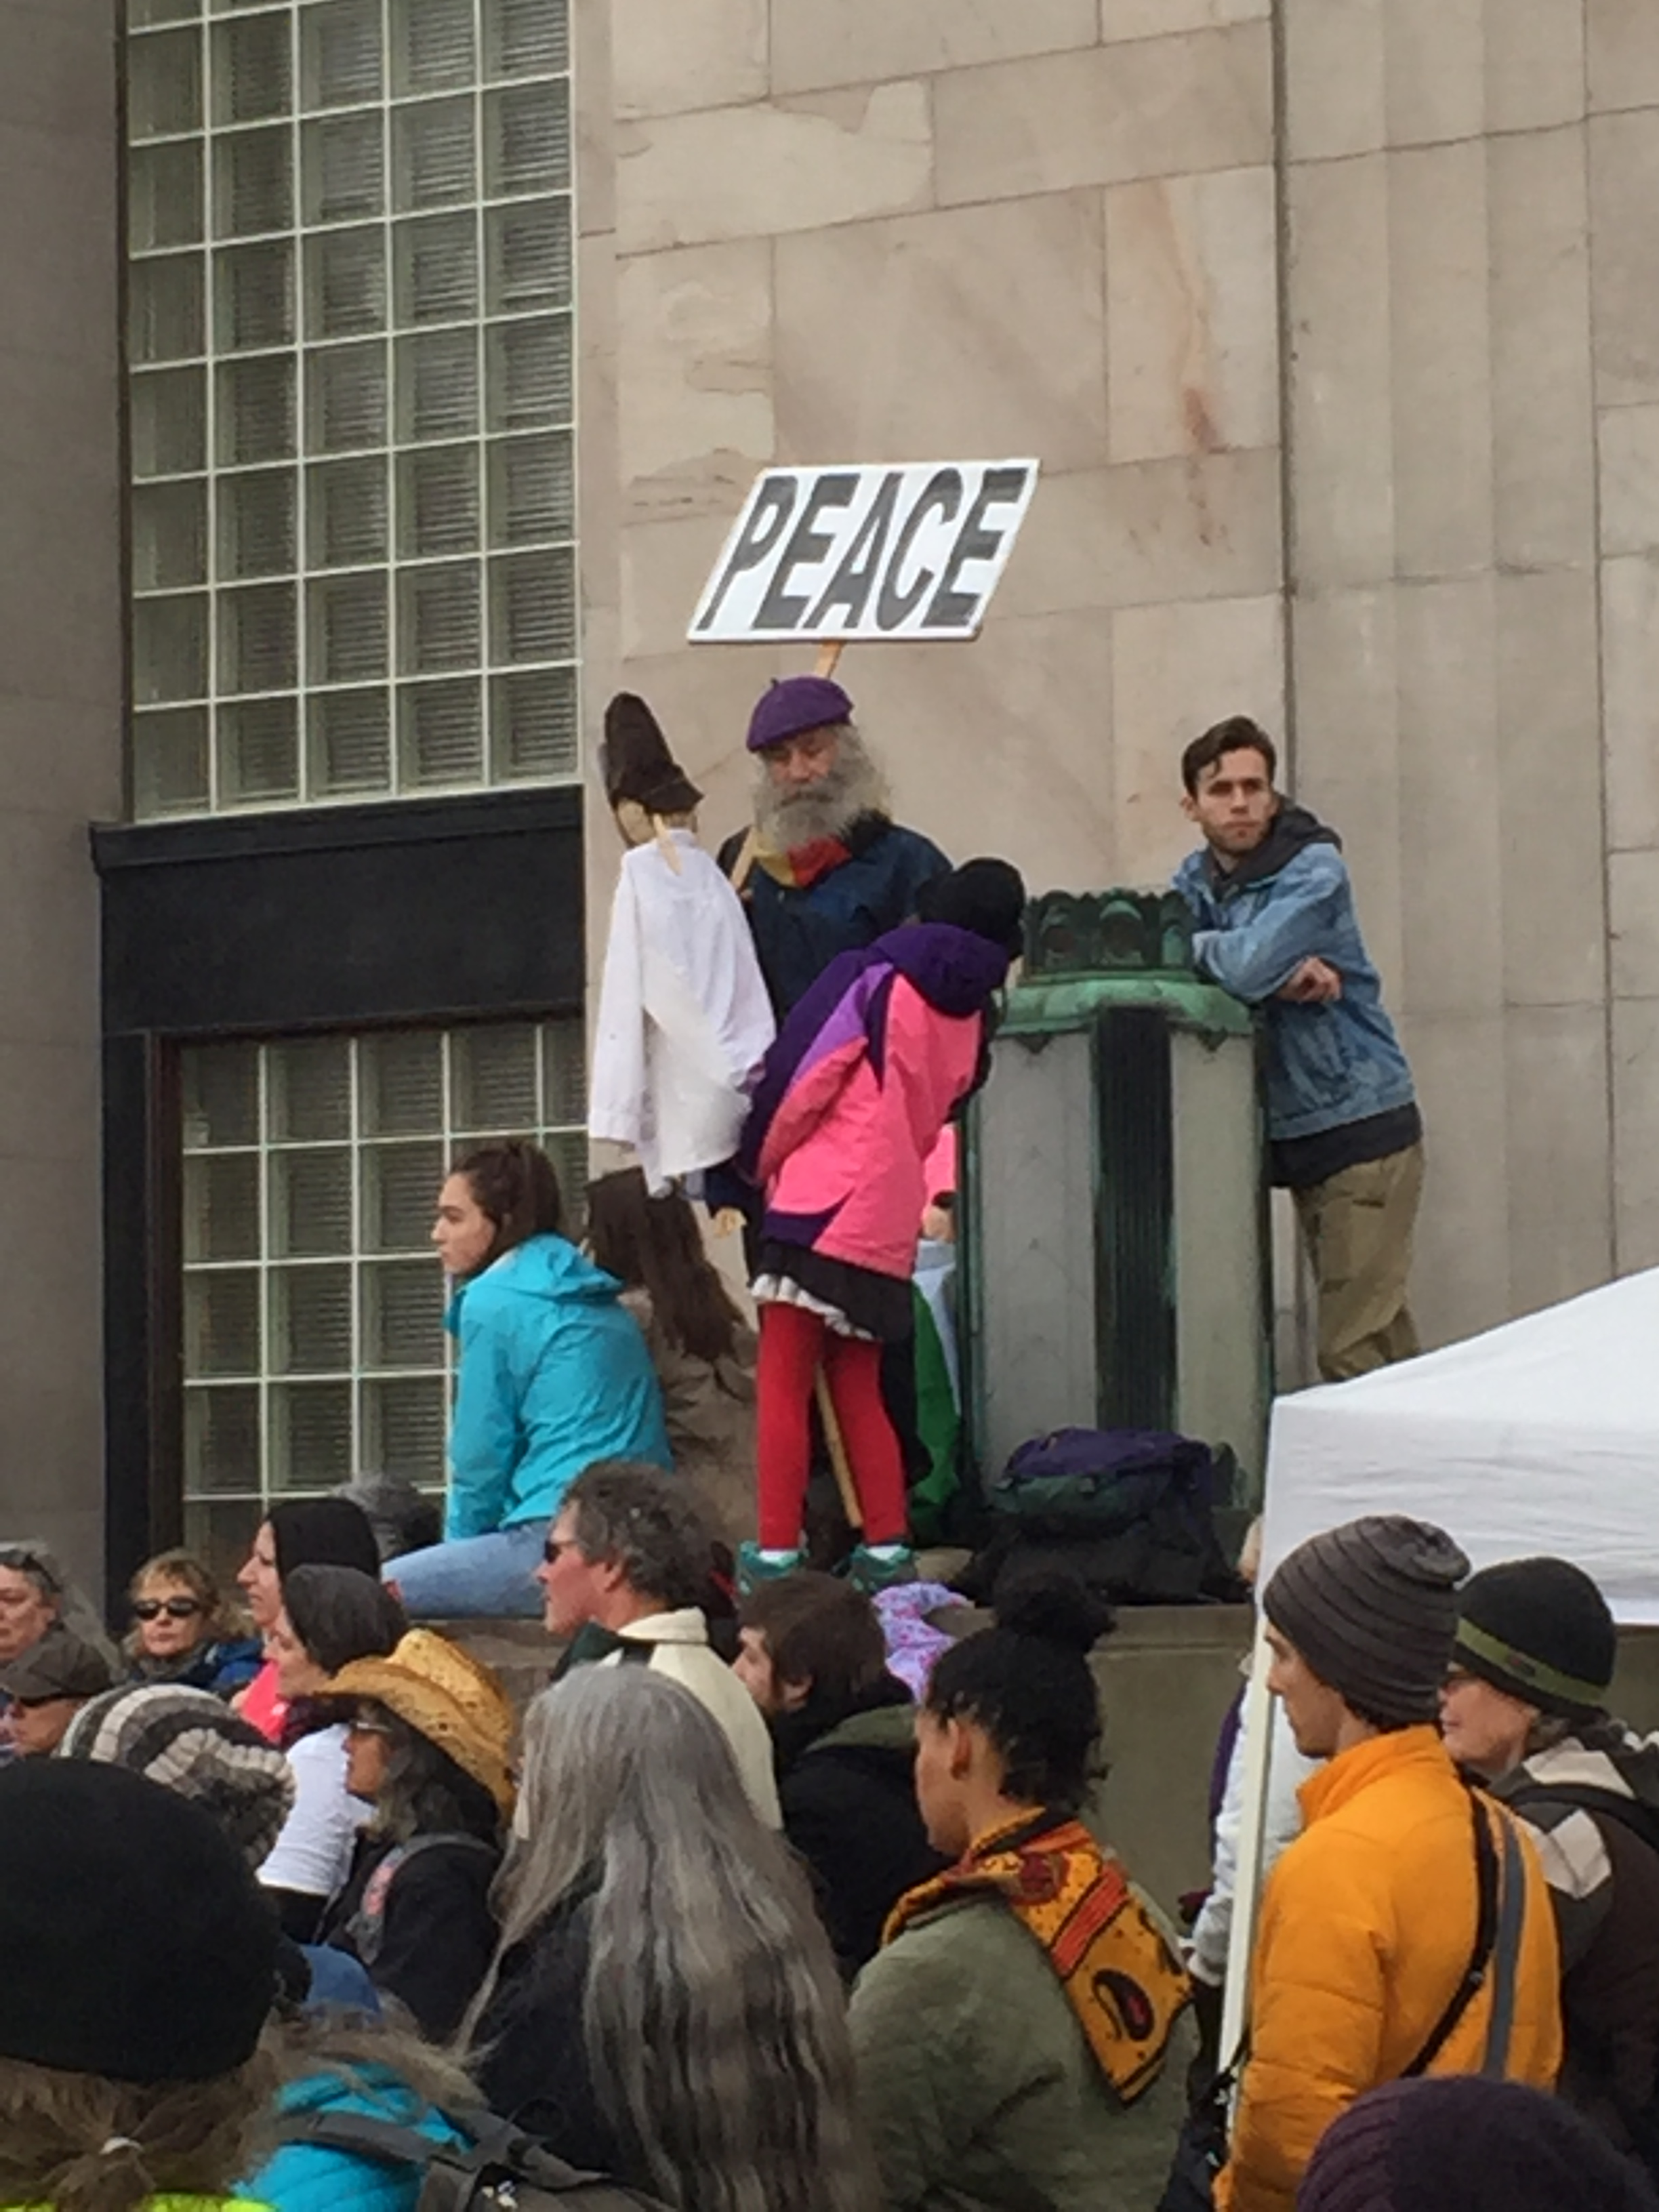 The great Peace Wizard among others at the march.